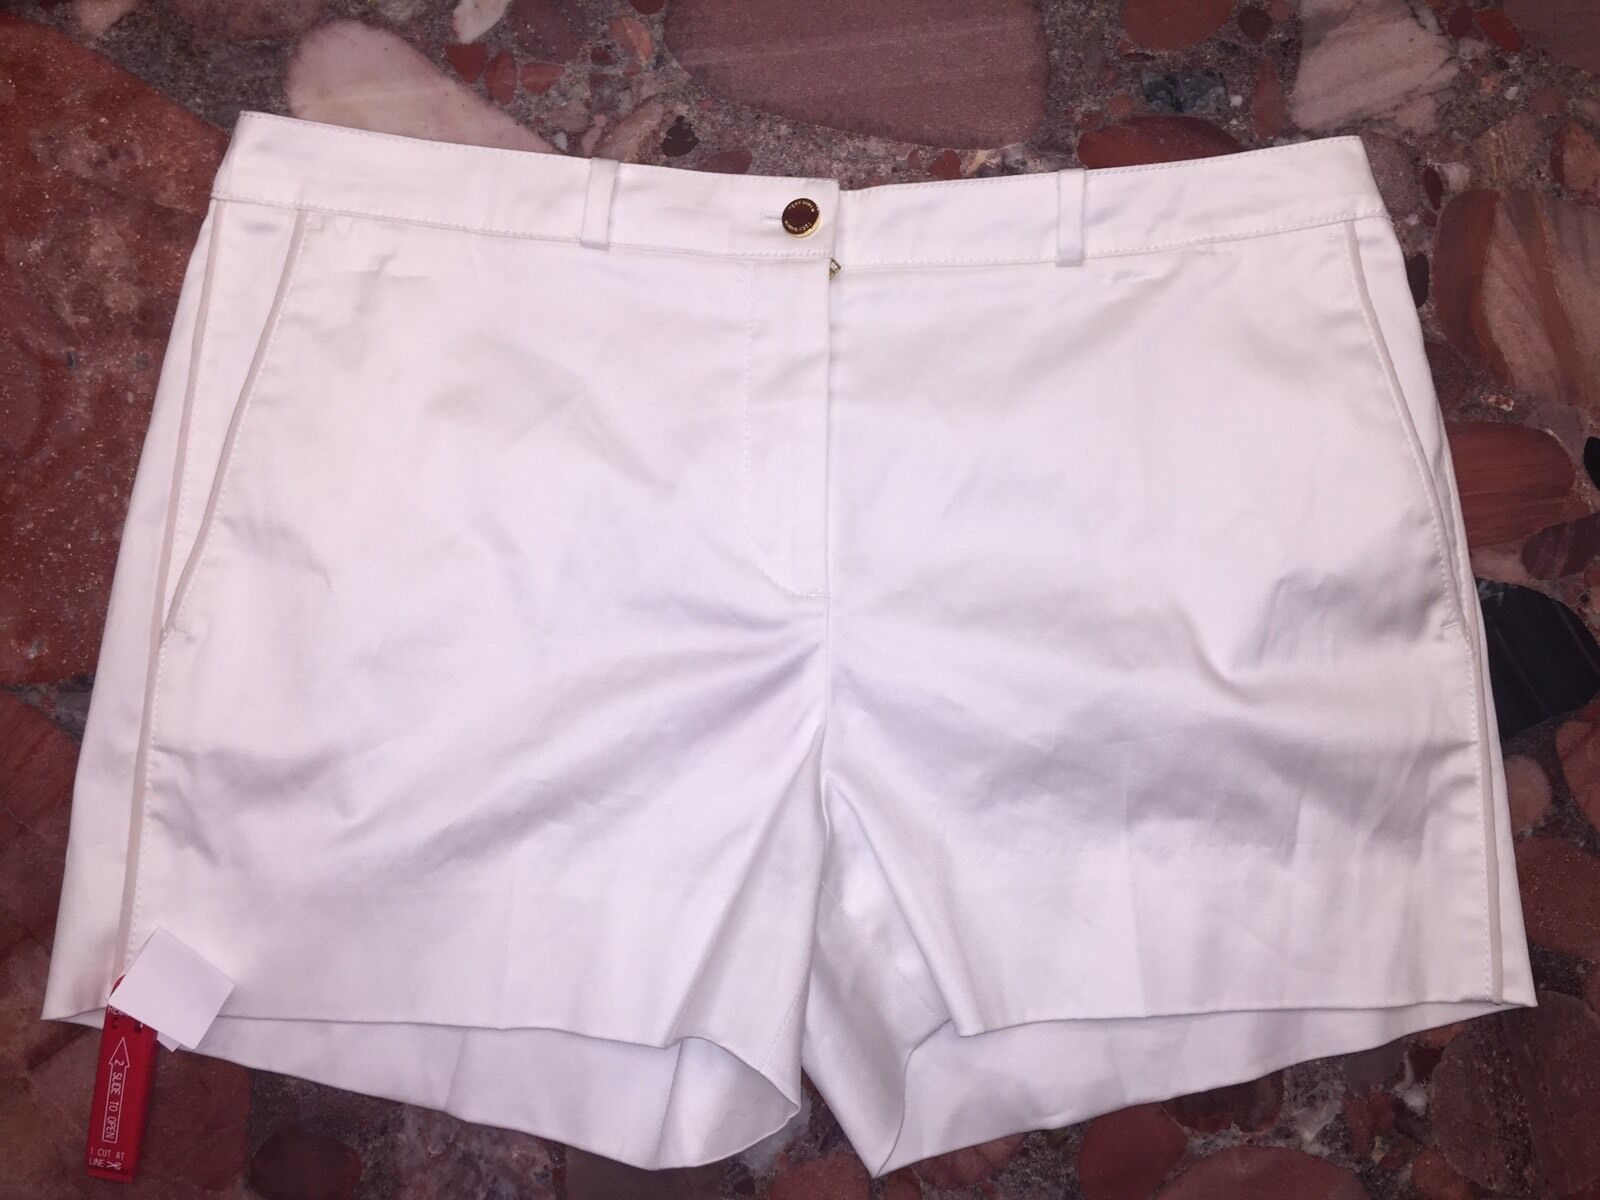 NWT  Tory Burch gold Buttons Solid White Lined Dress Shorts Short Women's 10